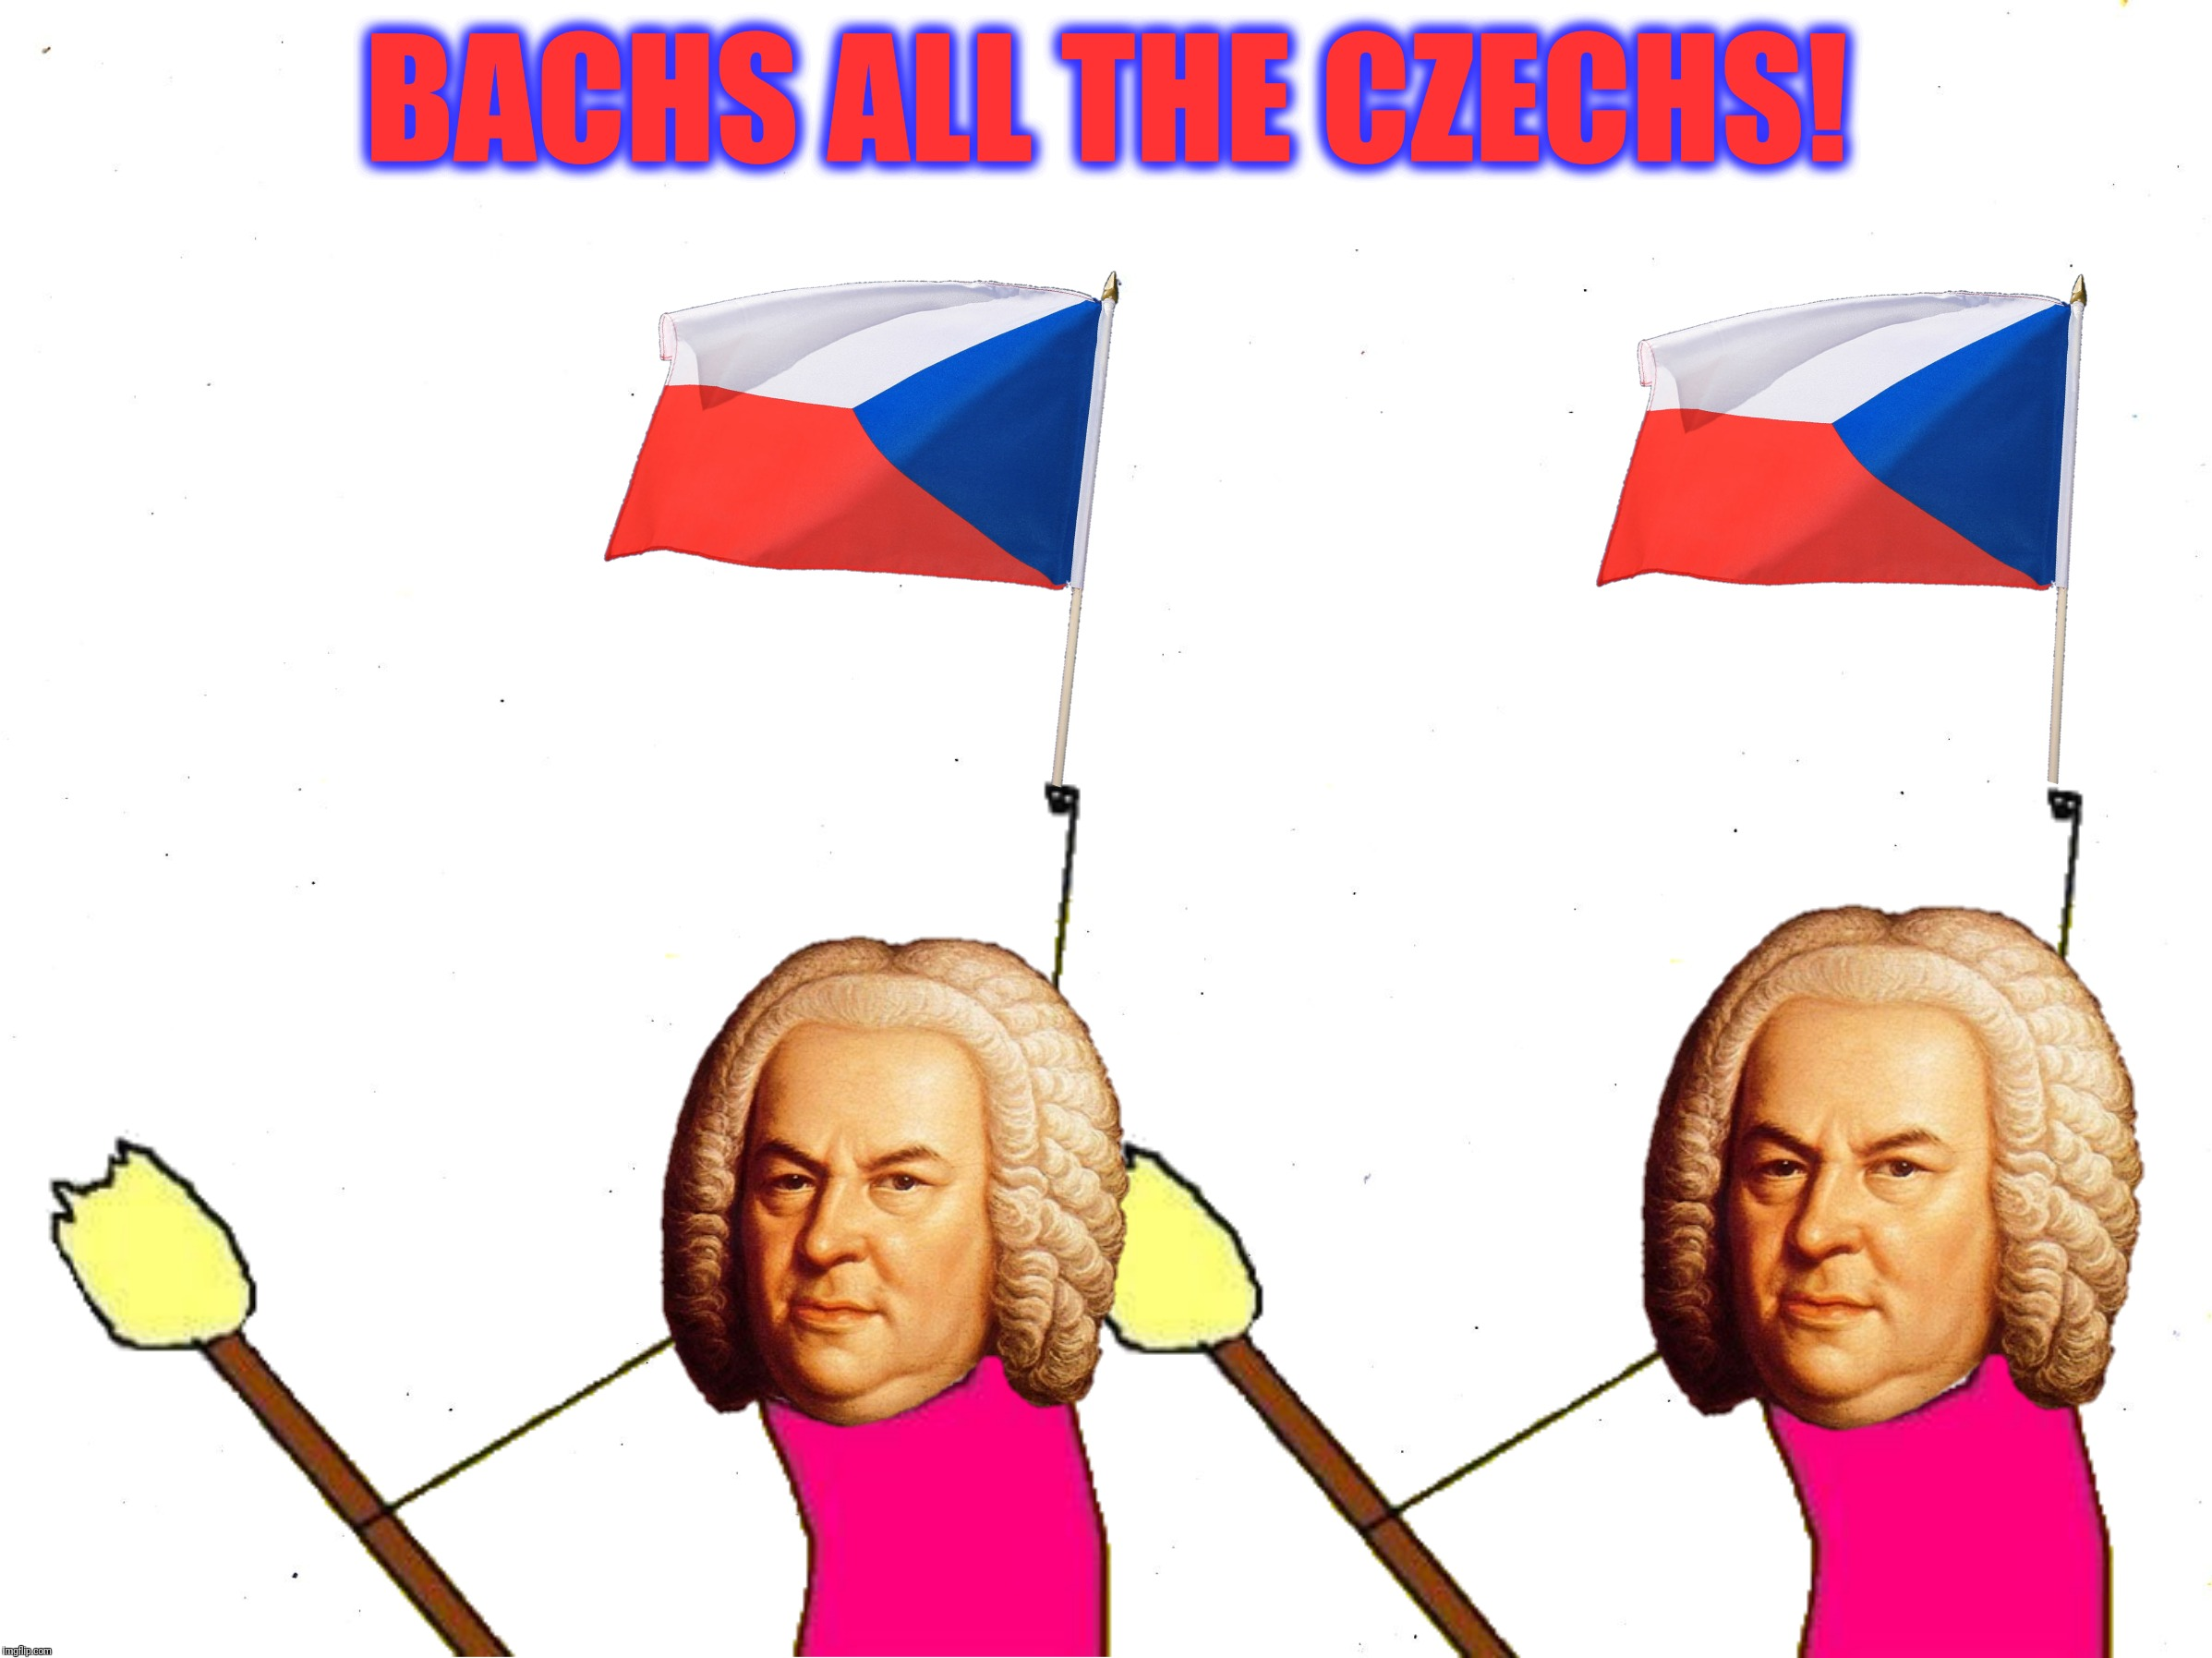 BACHS ALL THE CZECHS! | made w/ Imgflip meme maker